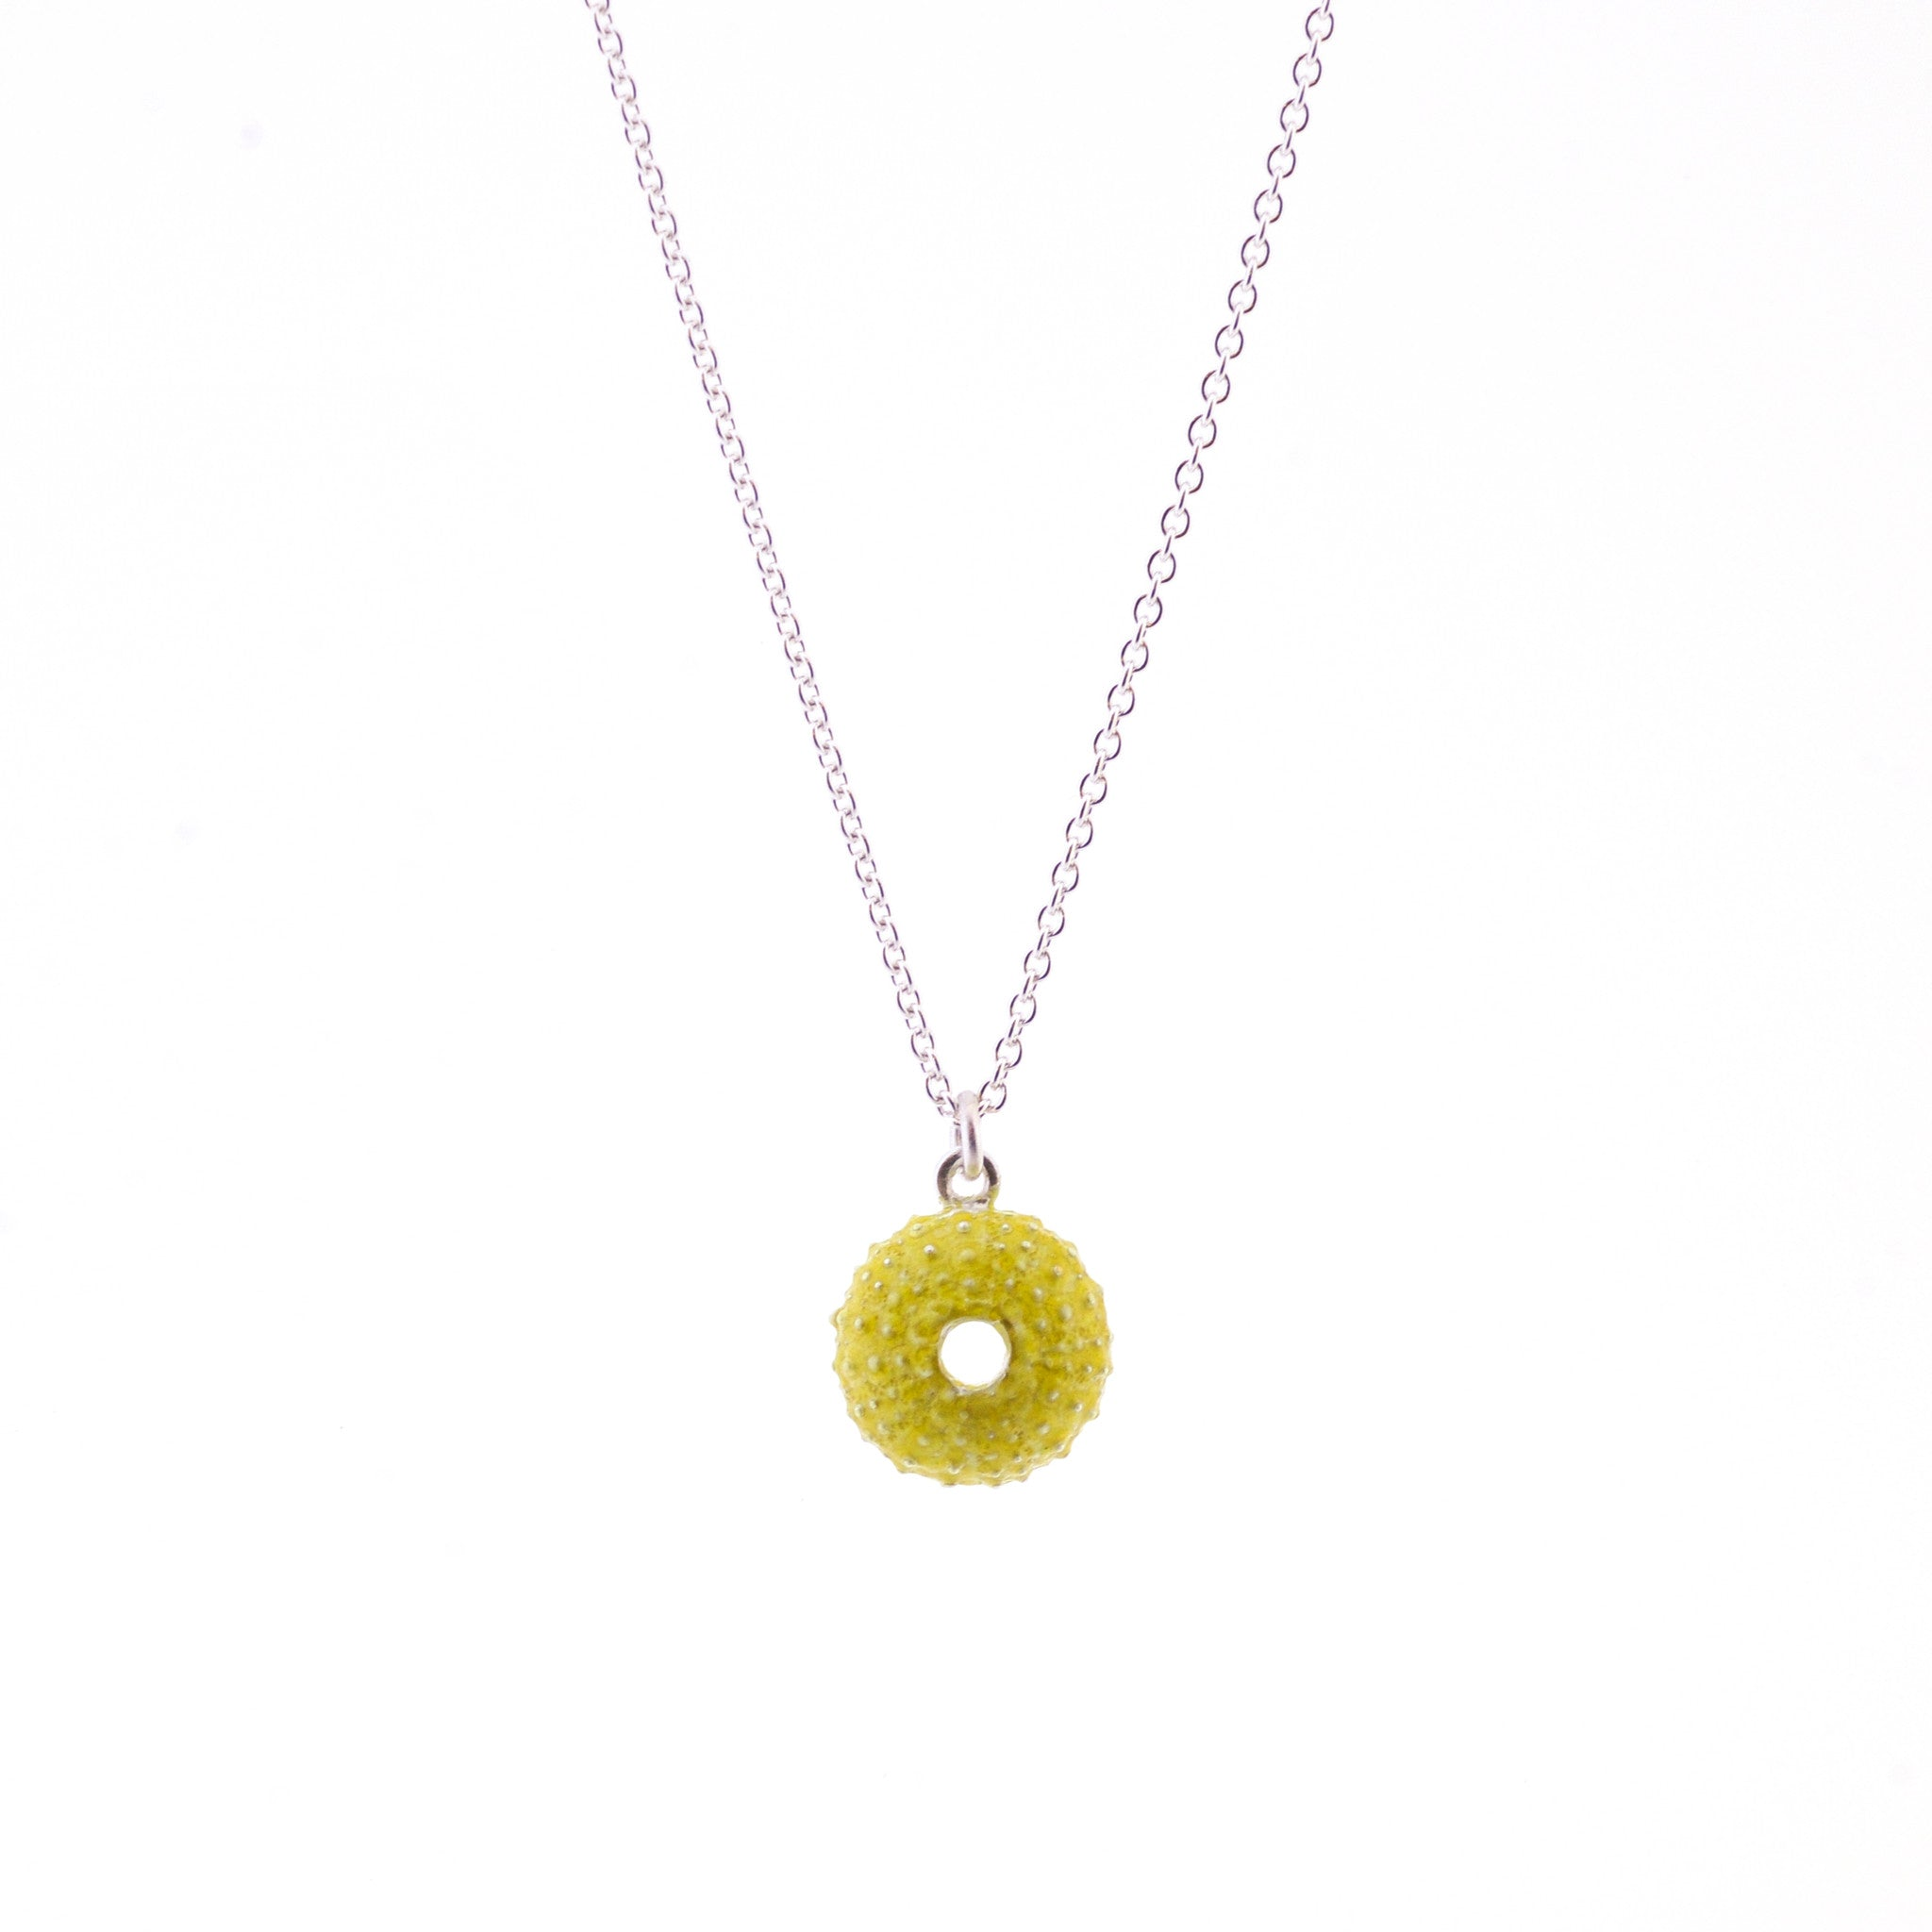 Enamelled Silver Urchin Necklace (Green)